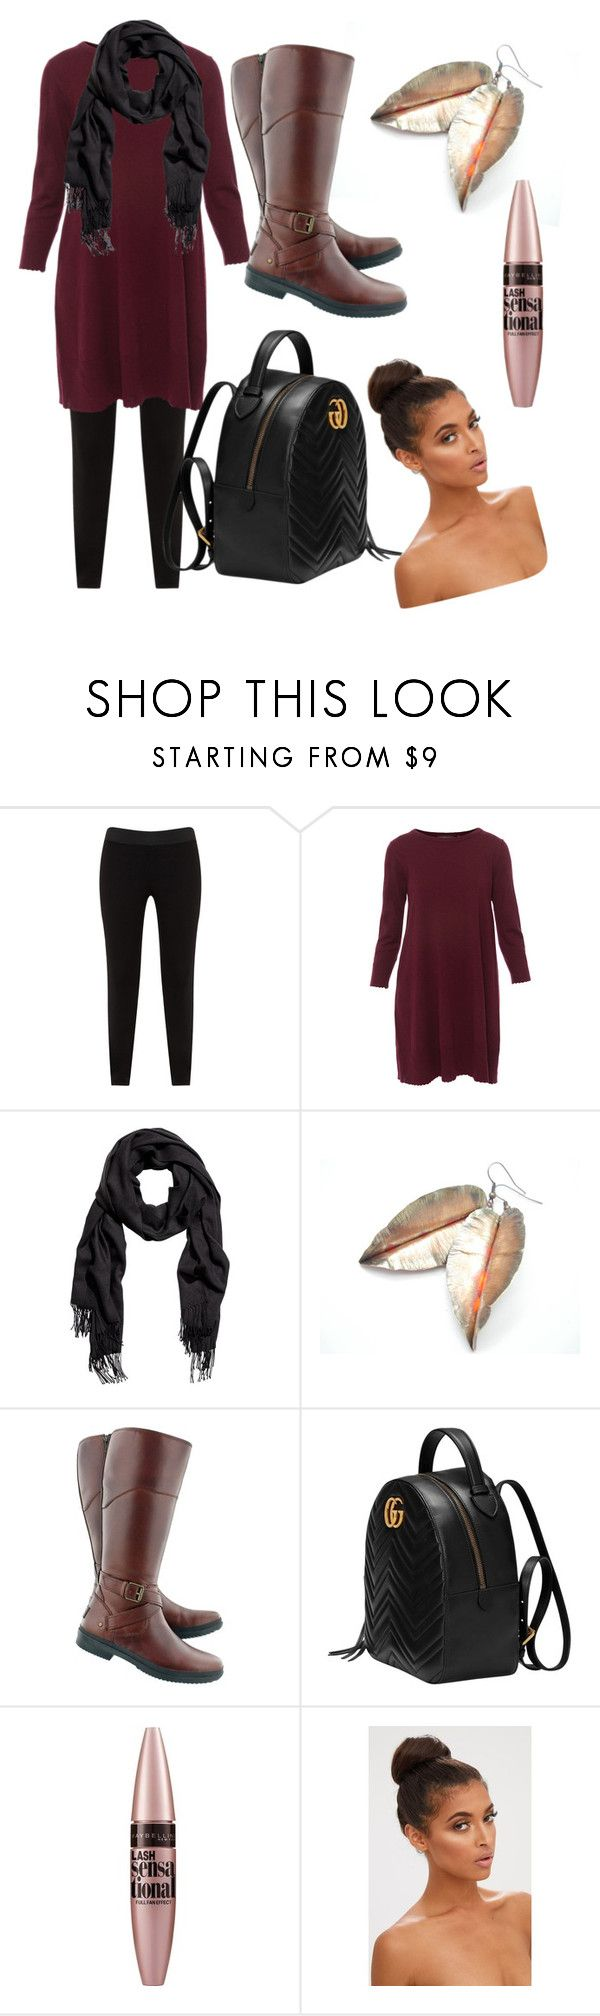 """Untitled #26"" by cescachew ❤ liked on Polyvore featuring JunaRose, Repeat, UGG, Gucci and Maybelline"